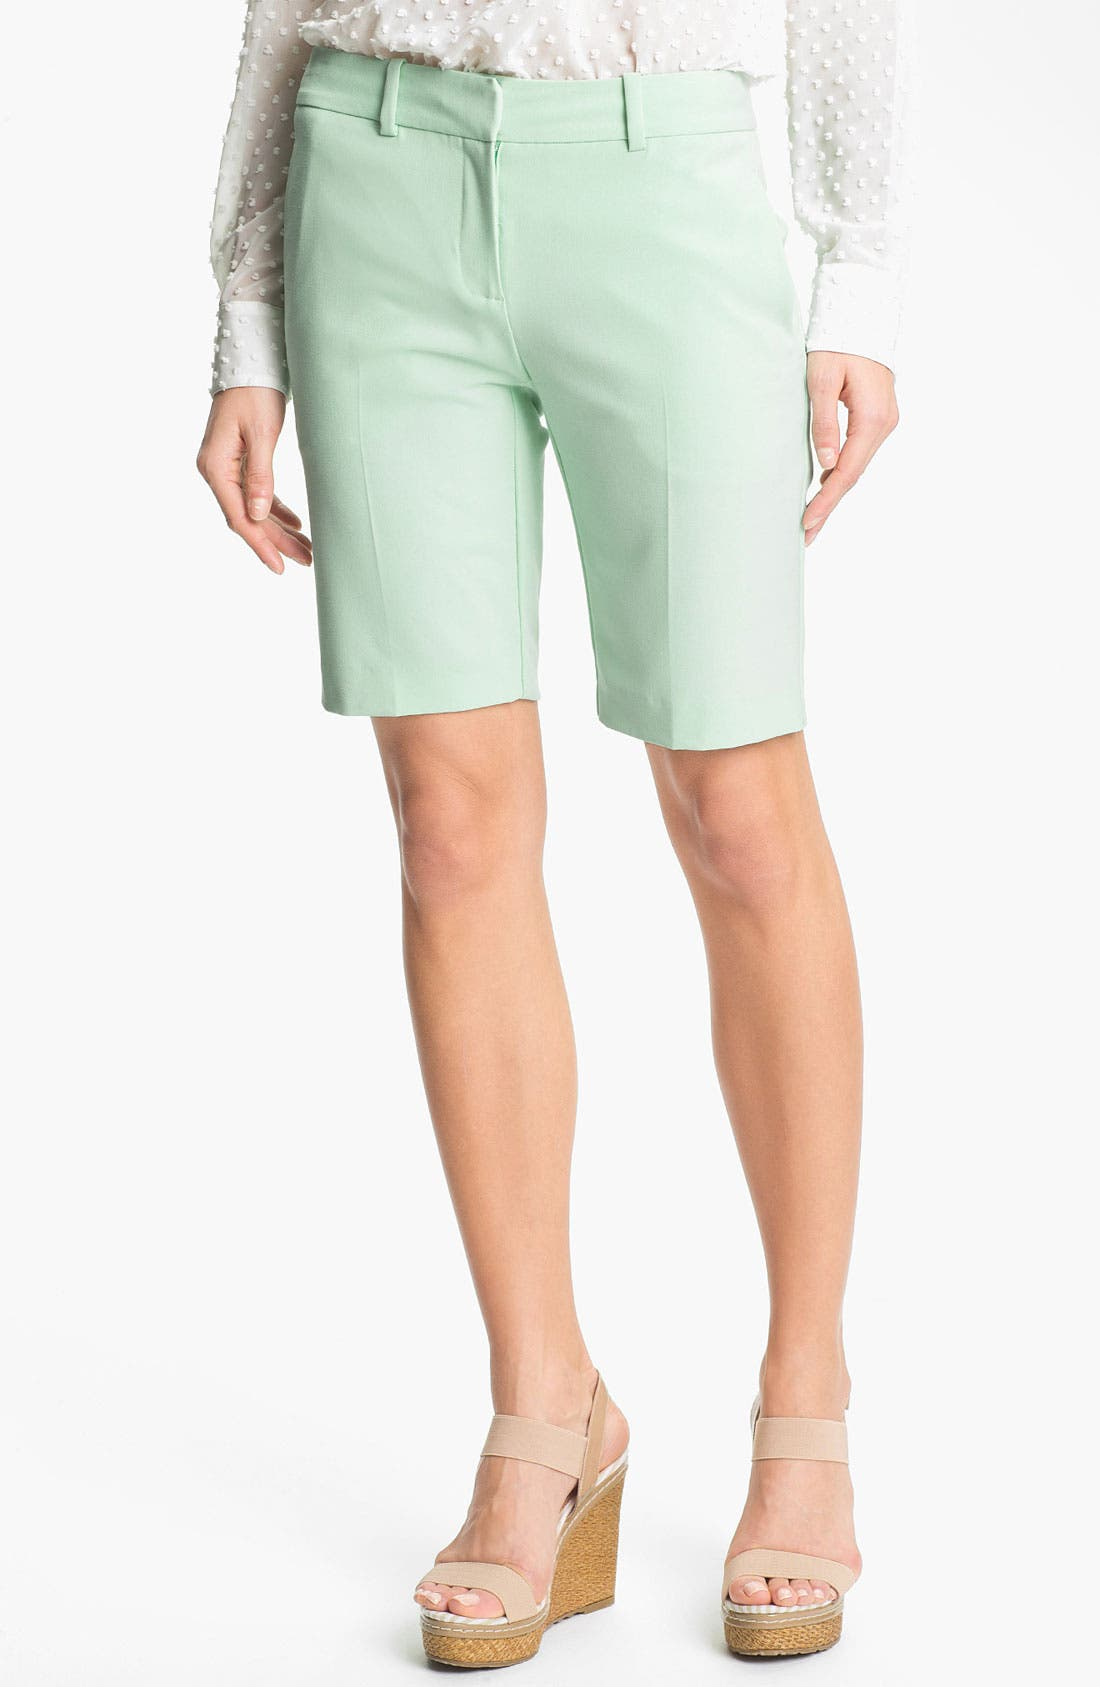 Bermuda Shorts,                             Main thumbnail 1, color,                             300